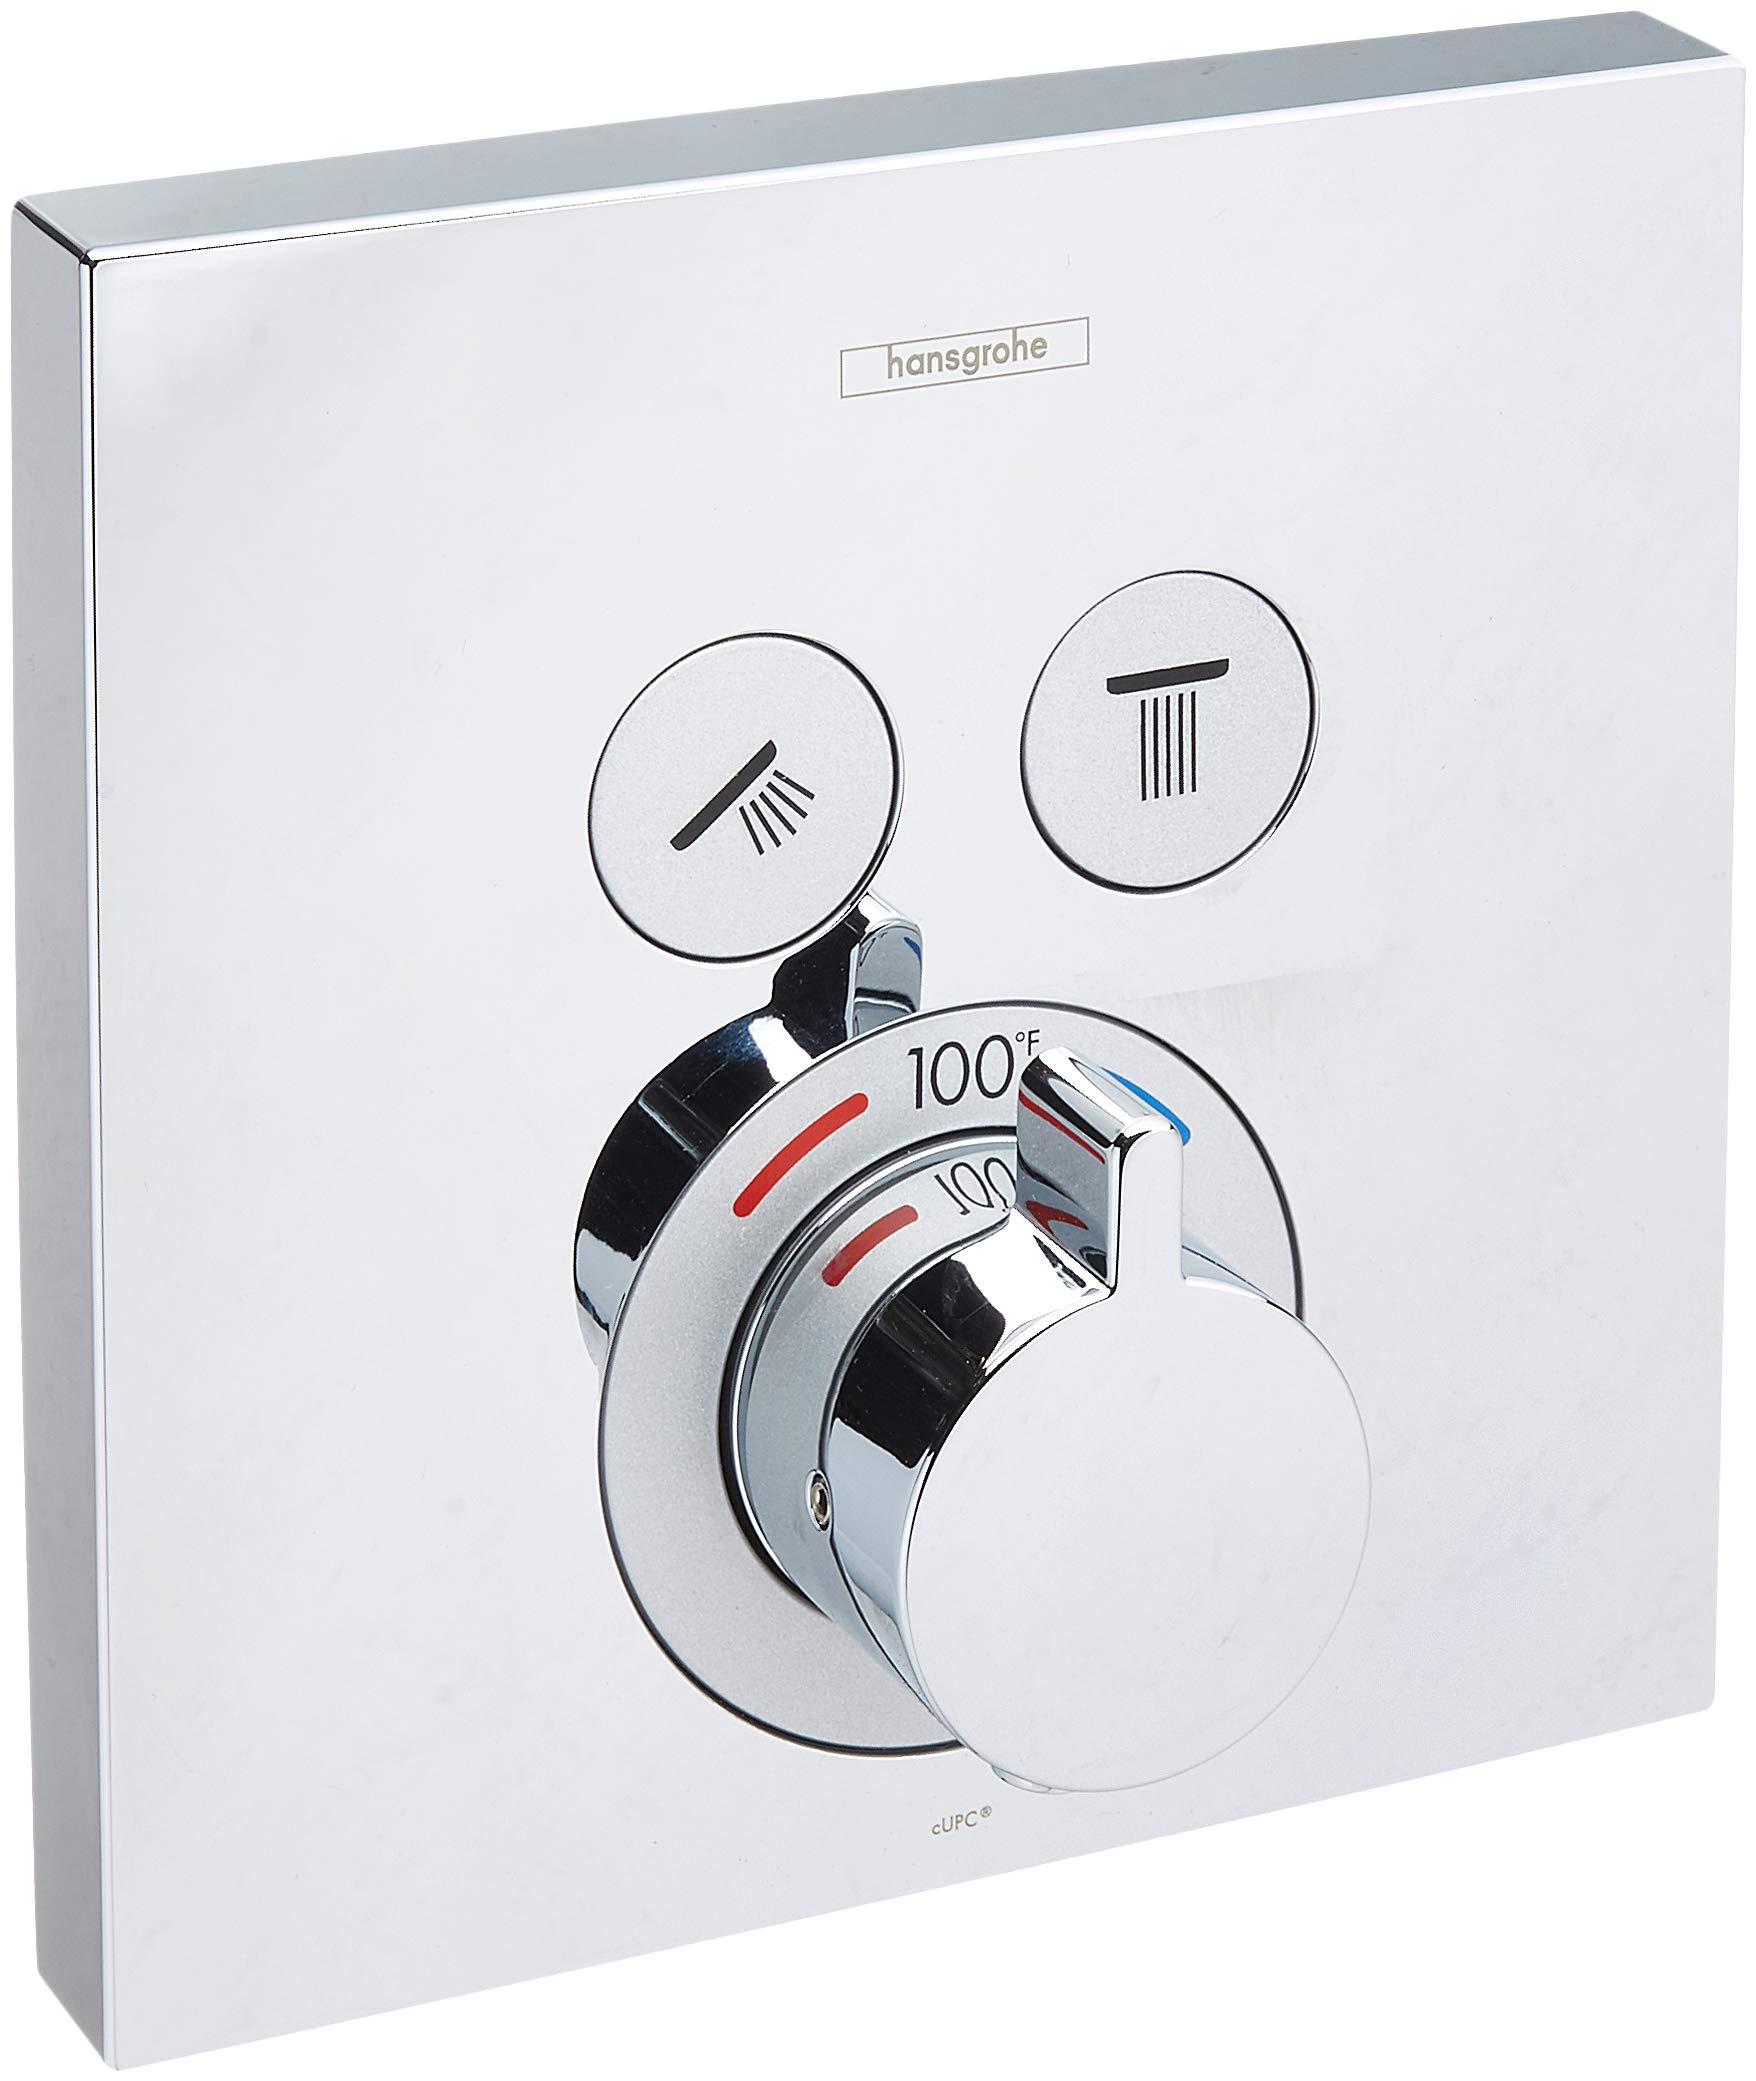 Hansgrohe 15763001 Thermostatic Trim 2 Function Finish, Small, Chrome by Hansgrohe